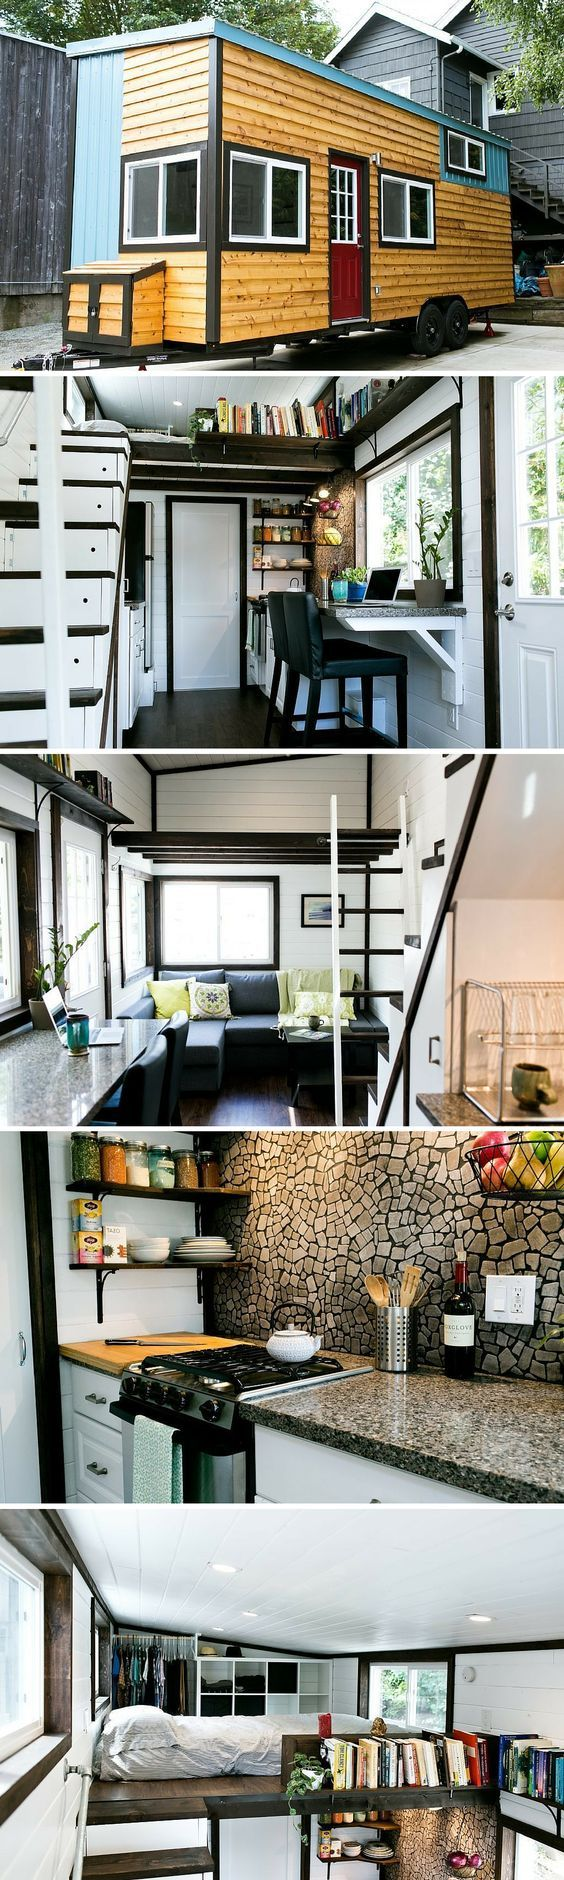 17 best little livin 39 images on pinterest tiny homes for Amazing houses inside and out